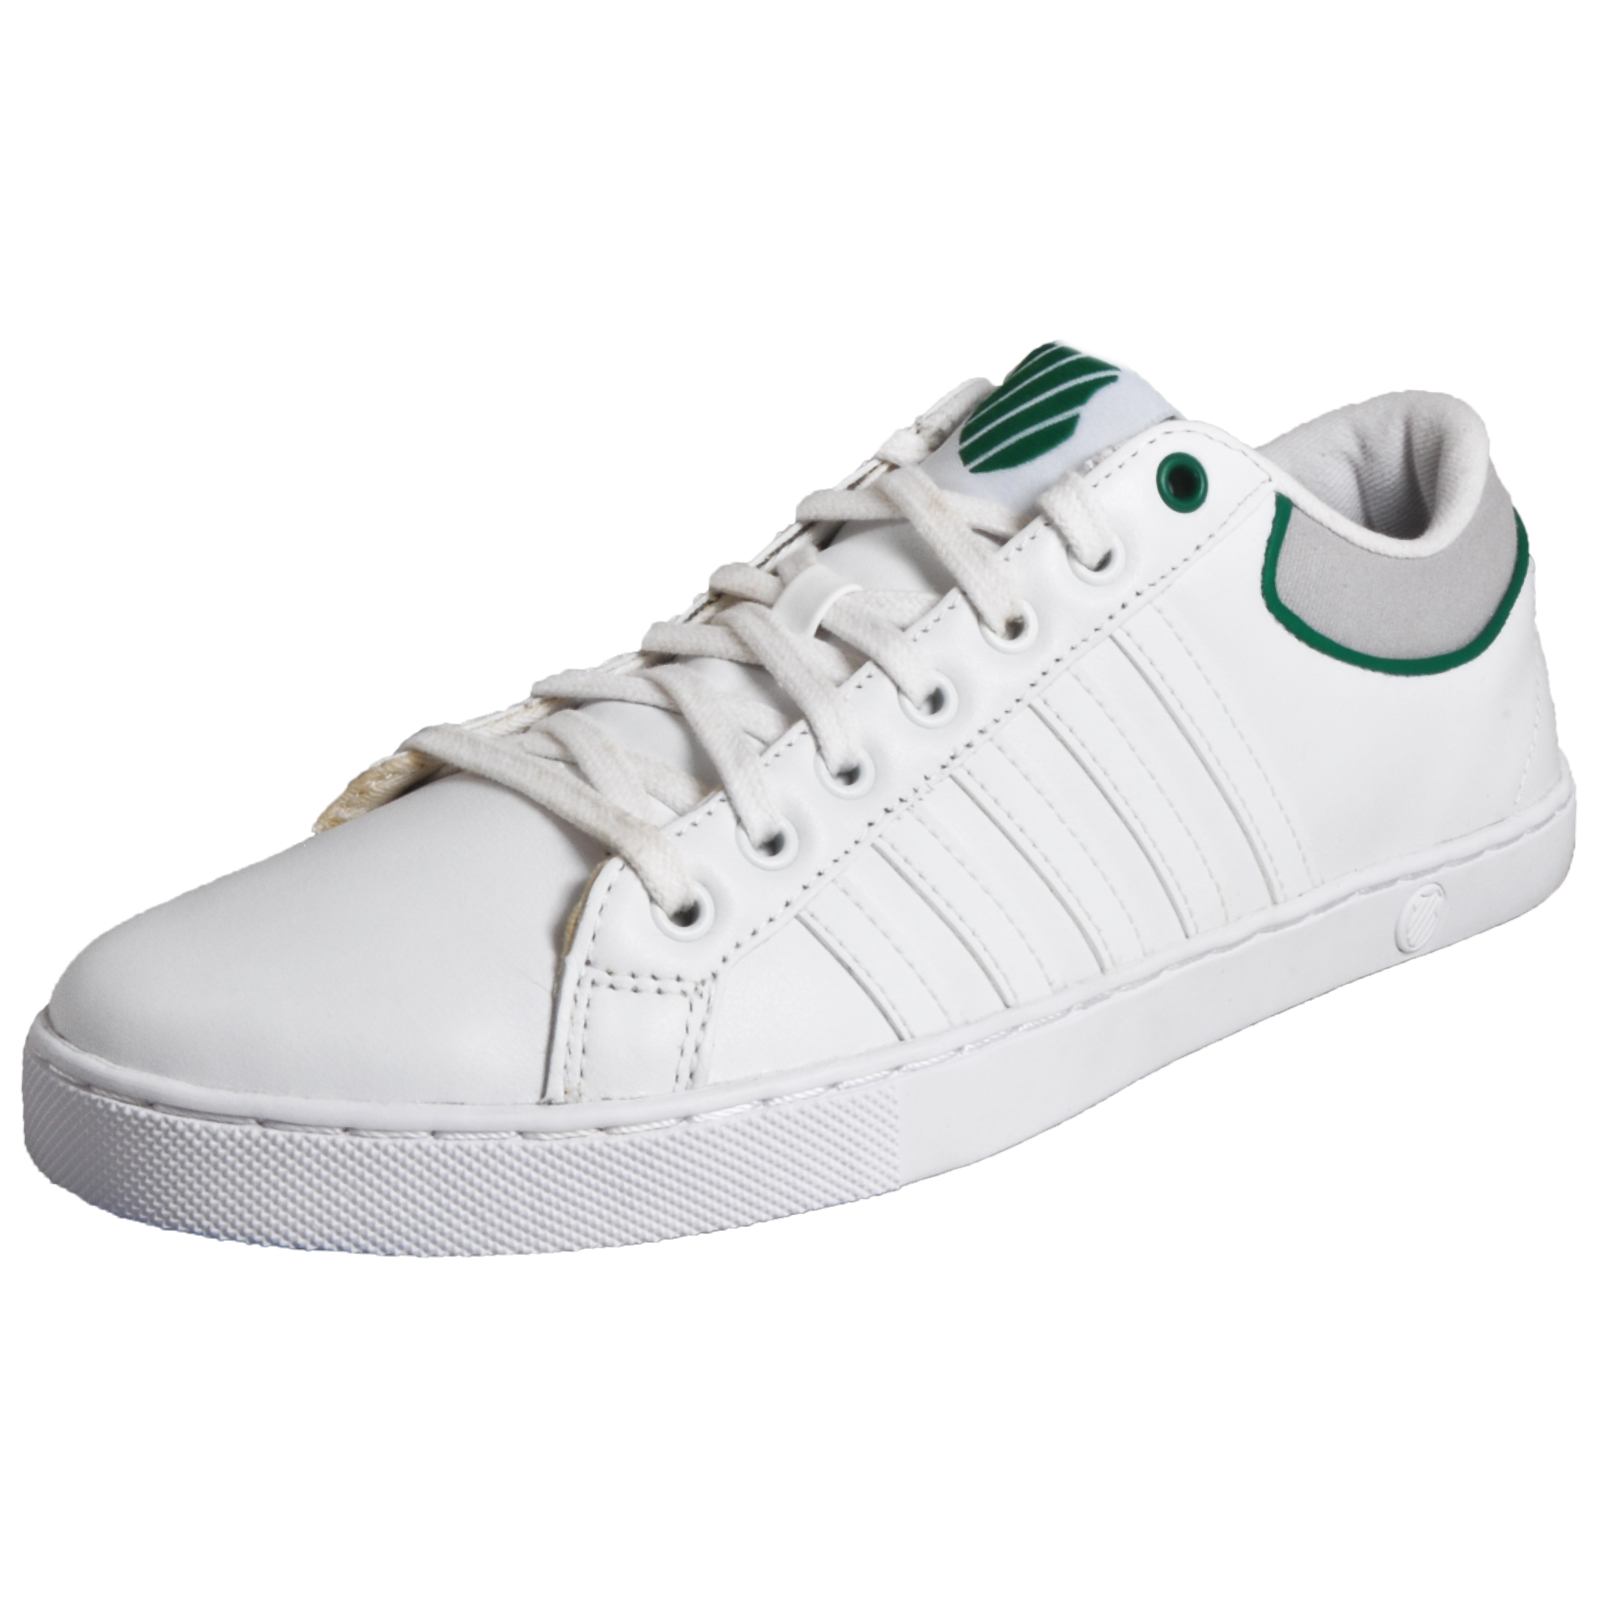 a6f6b8bda7c8 Details about K-Swiss Adcourt 72 Men s Causal Leather Retro Fashion Trainers  White